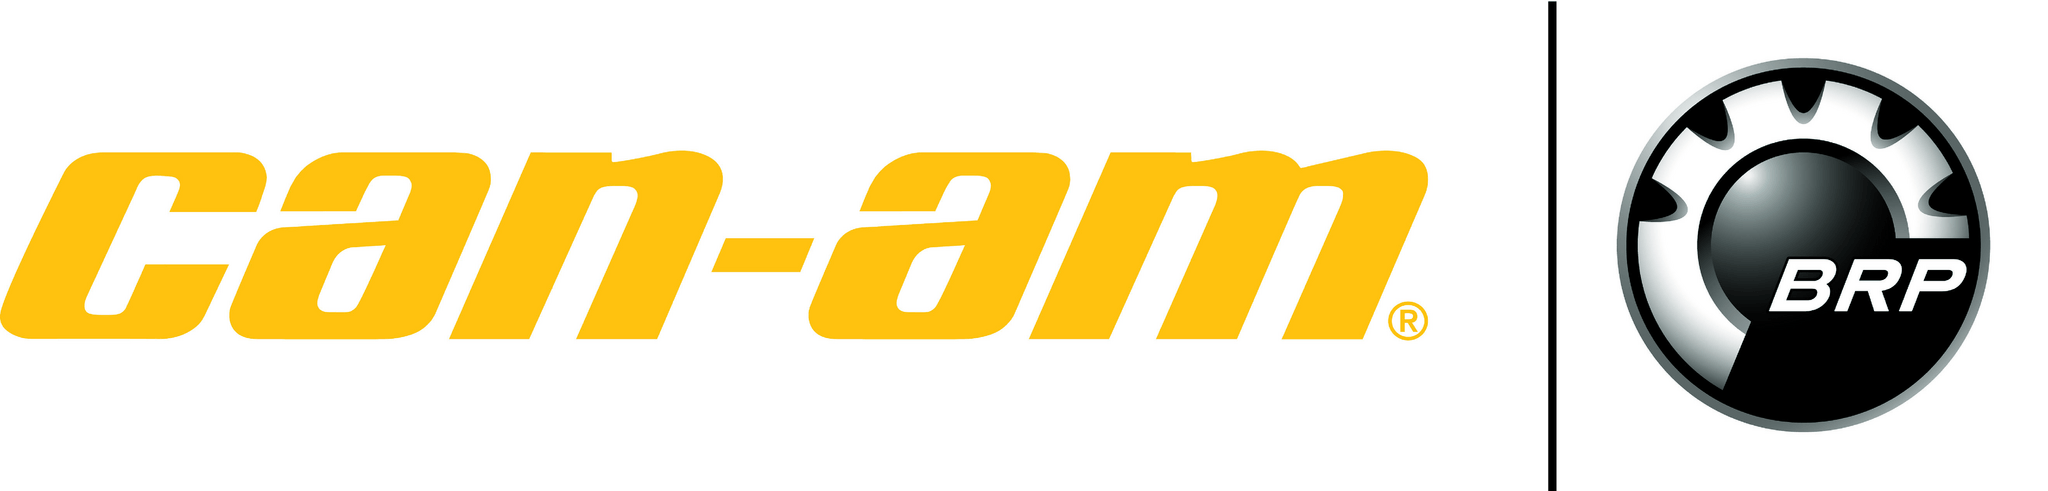 BRP - Recreational Products - Can-Am